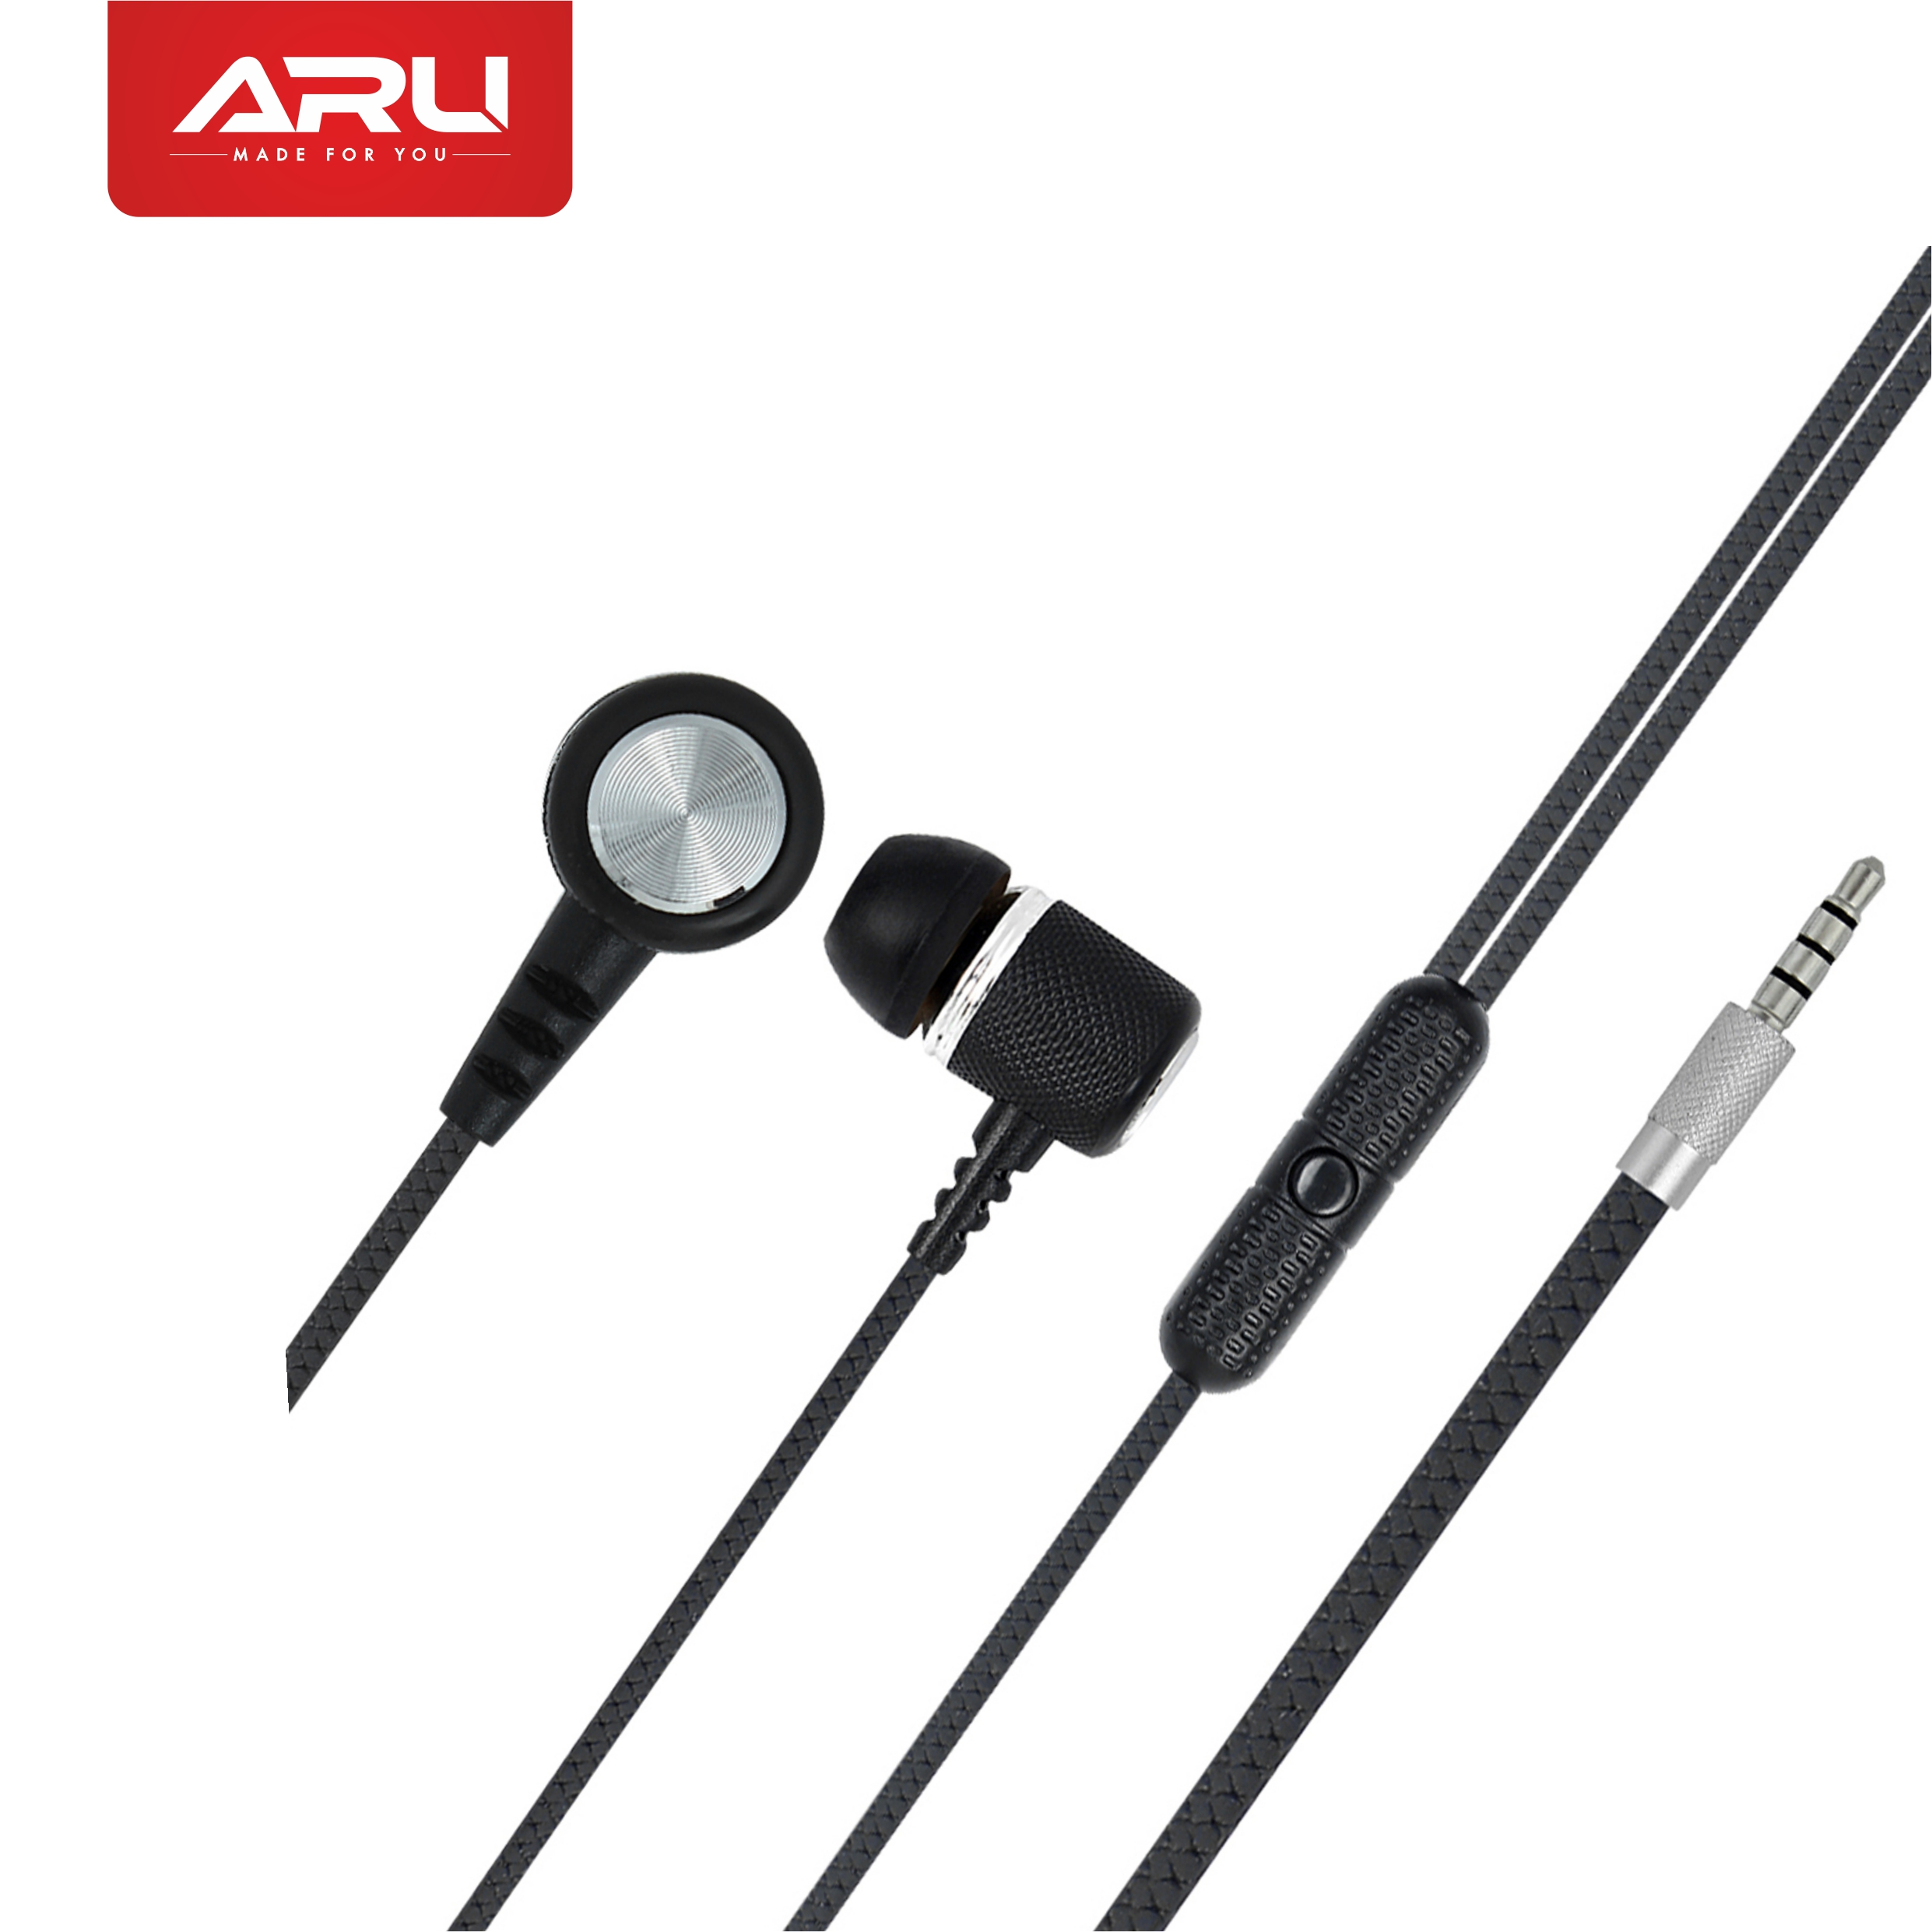 ARU AEP-44 Universal in Ear Headset with Mic - Black